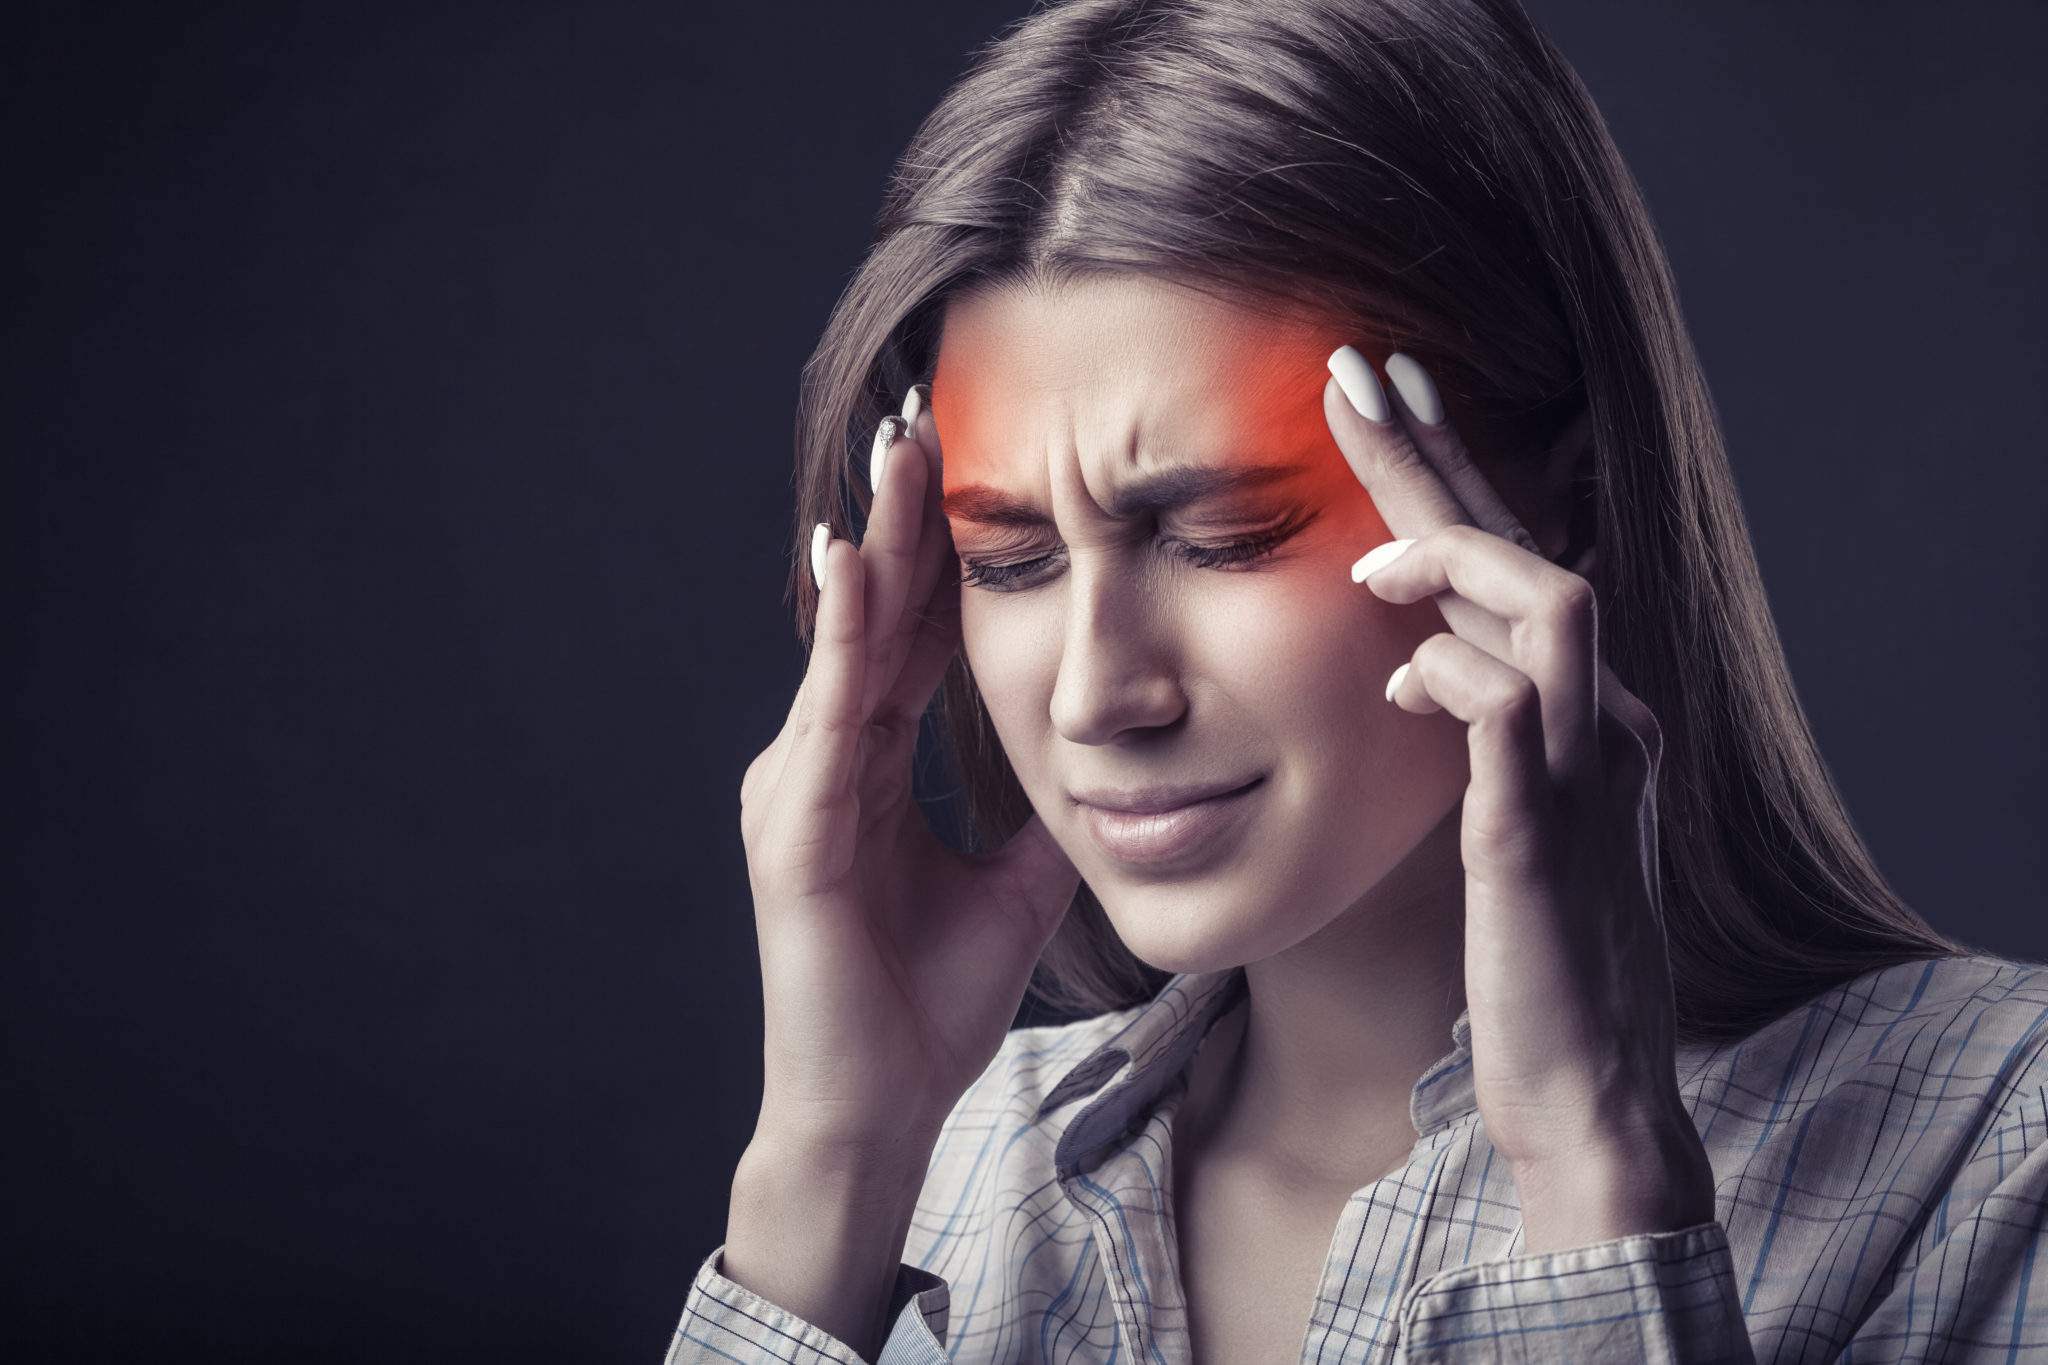 Is My Headache a Migraine? Symptoms, Triggers And Relief Fror Migraines